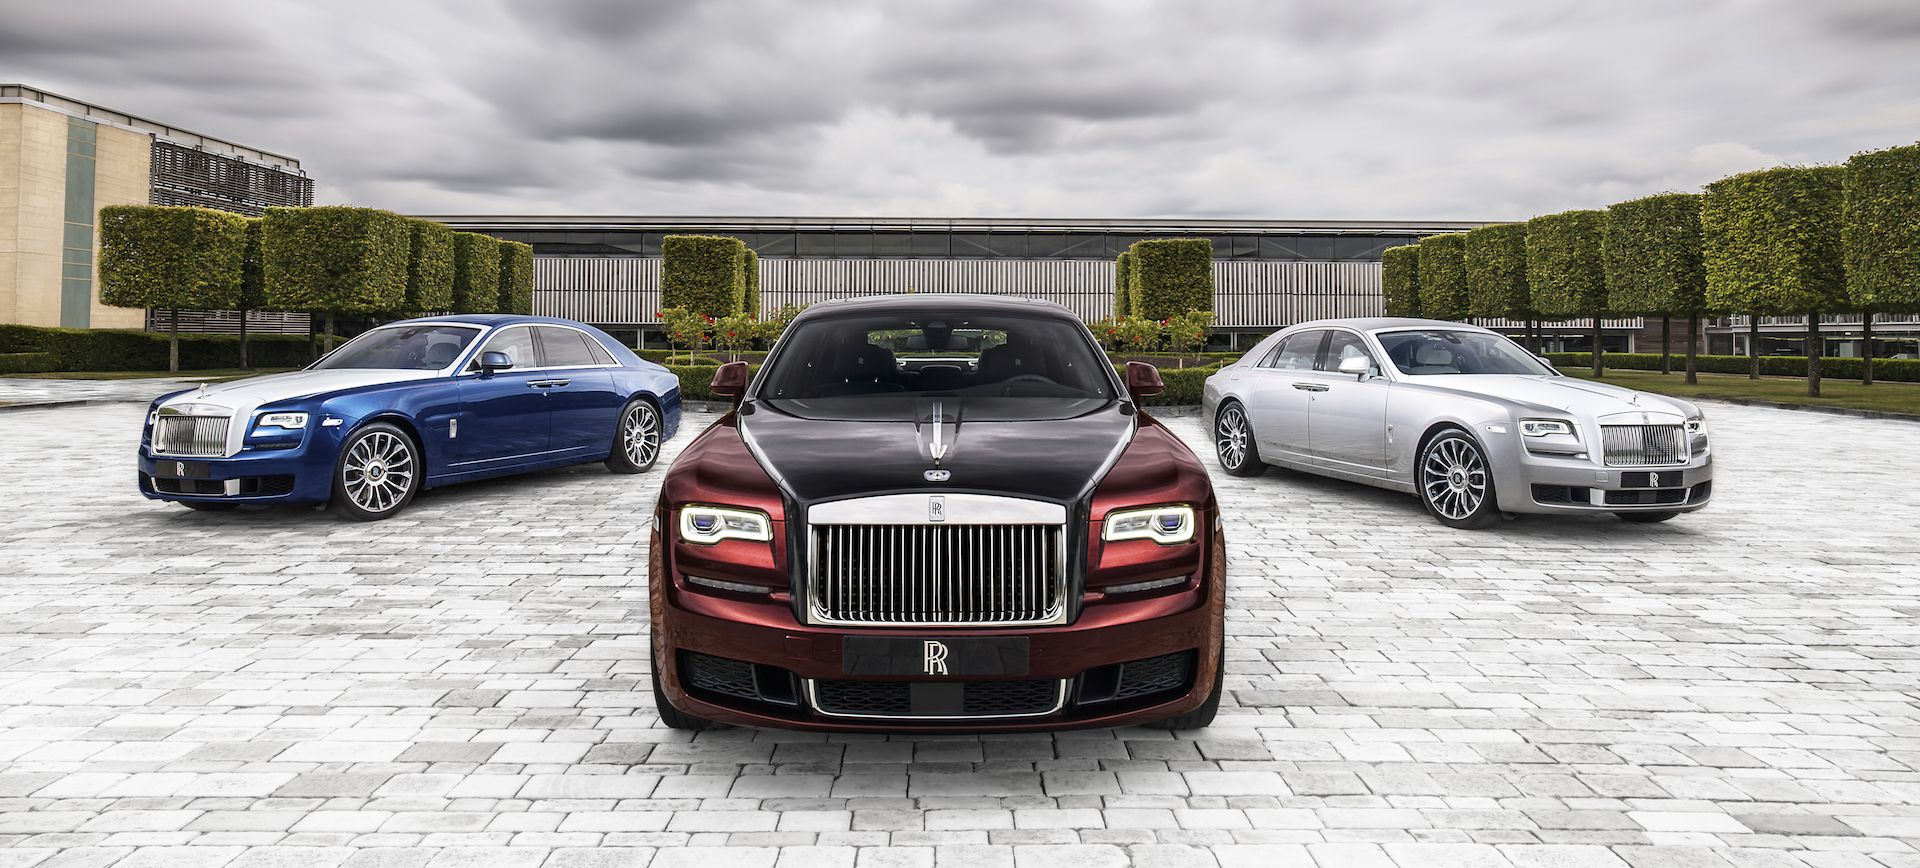 Rolls Royce Goes All In For The Ghost Zenith As Production Ends